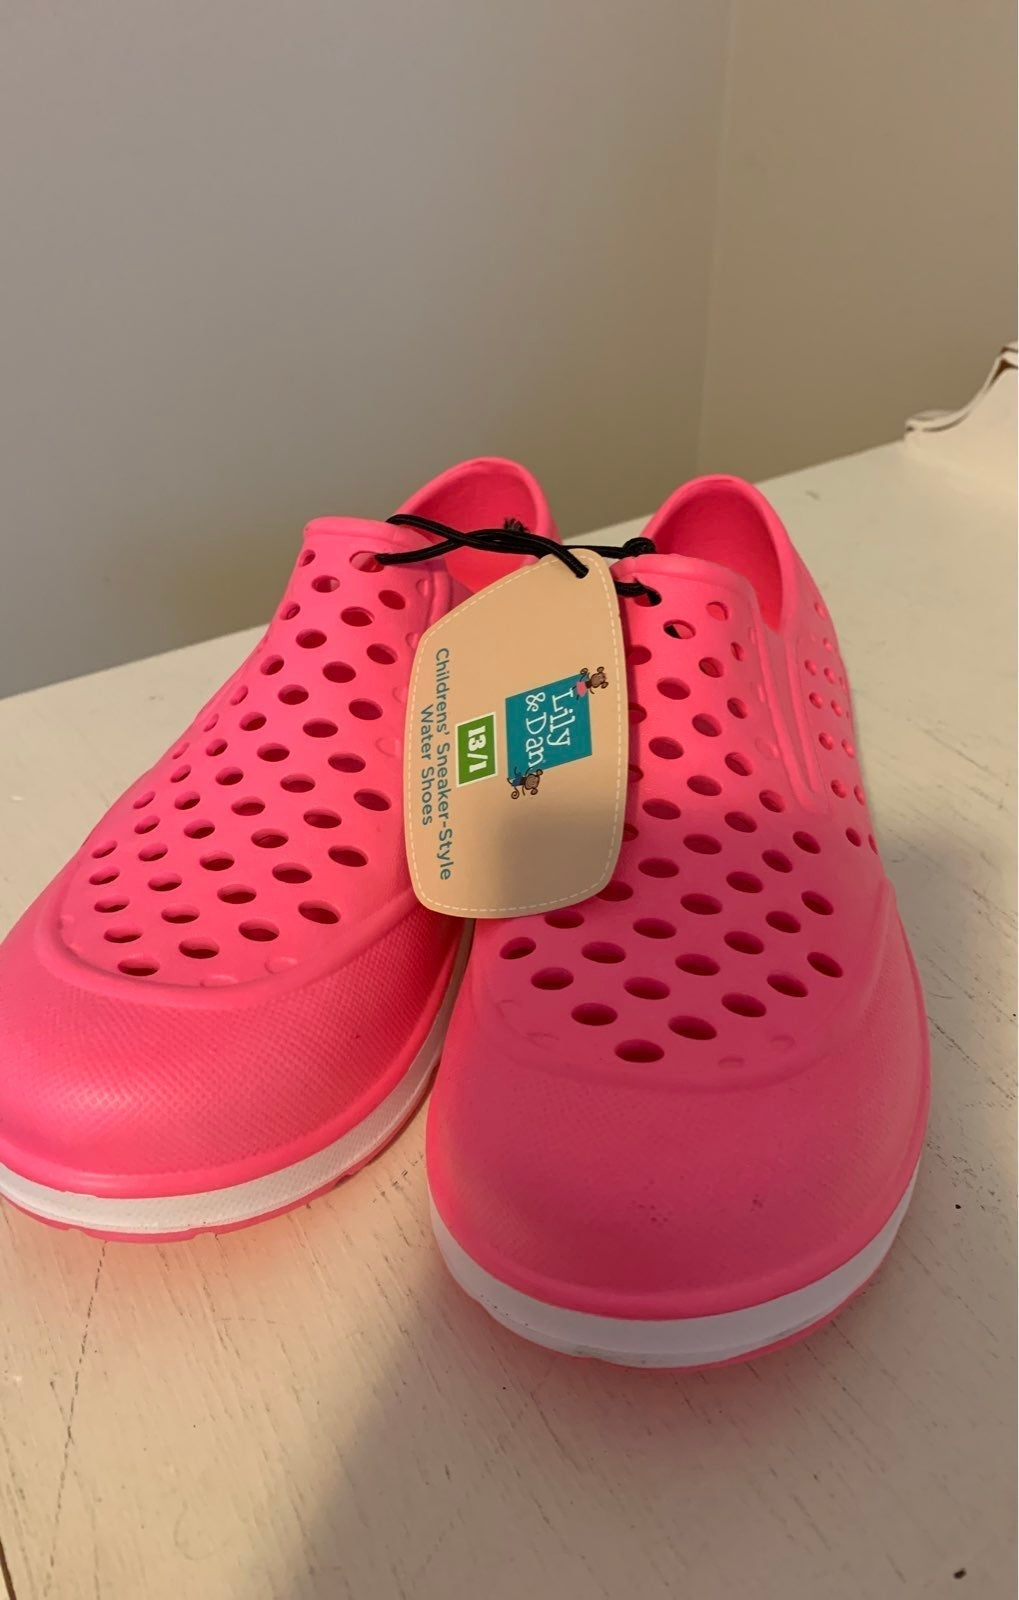 New with tags kids shoes